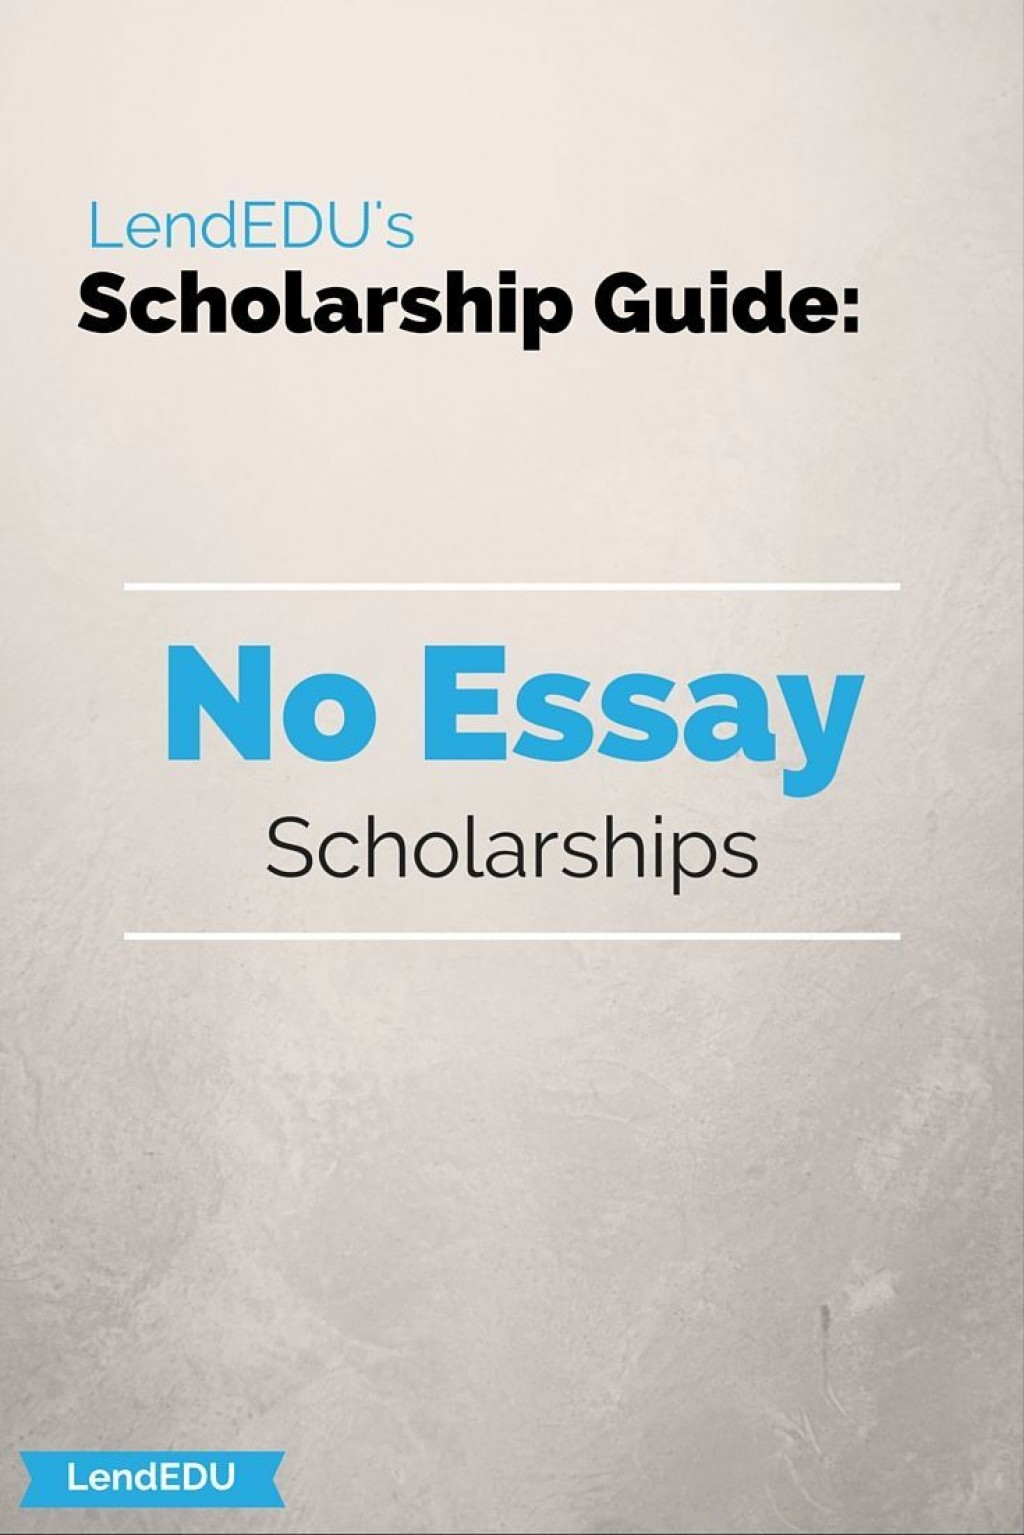 016 Essay Example No Scholarship Wondrous College Scholarships 2018 2019 Free Large